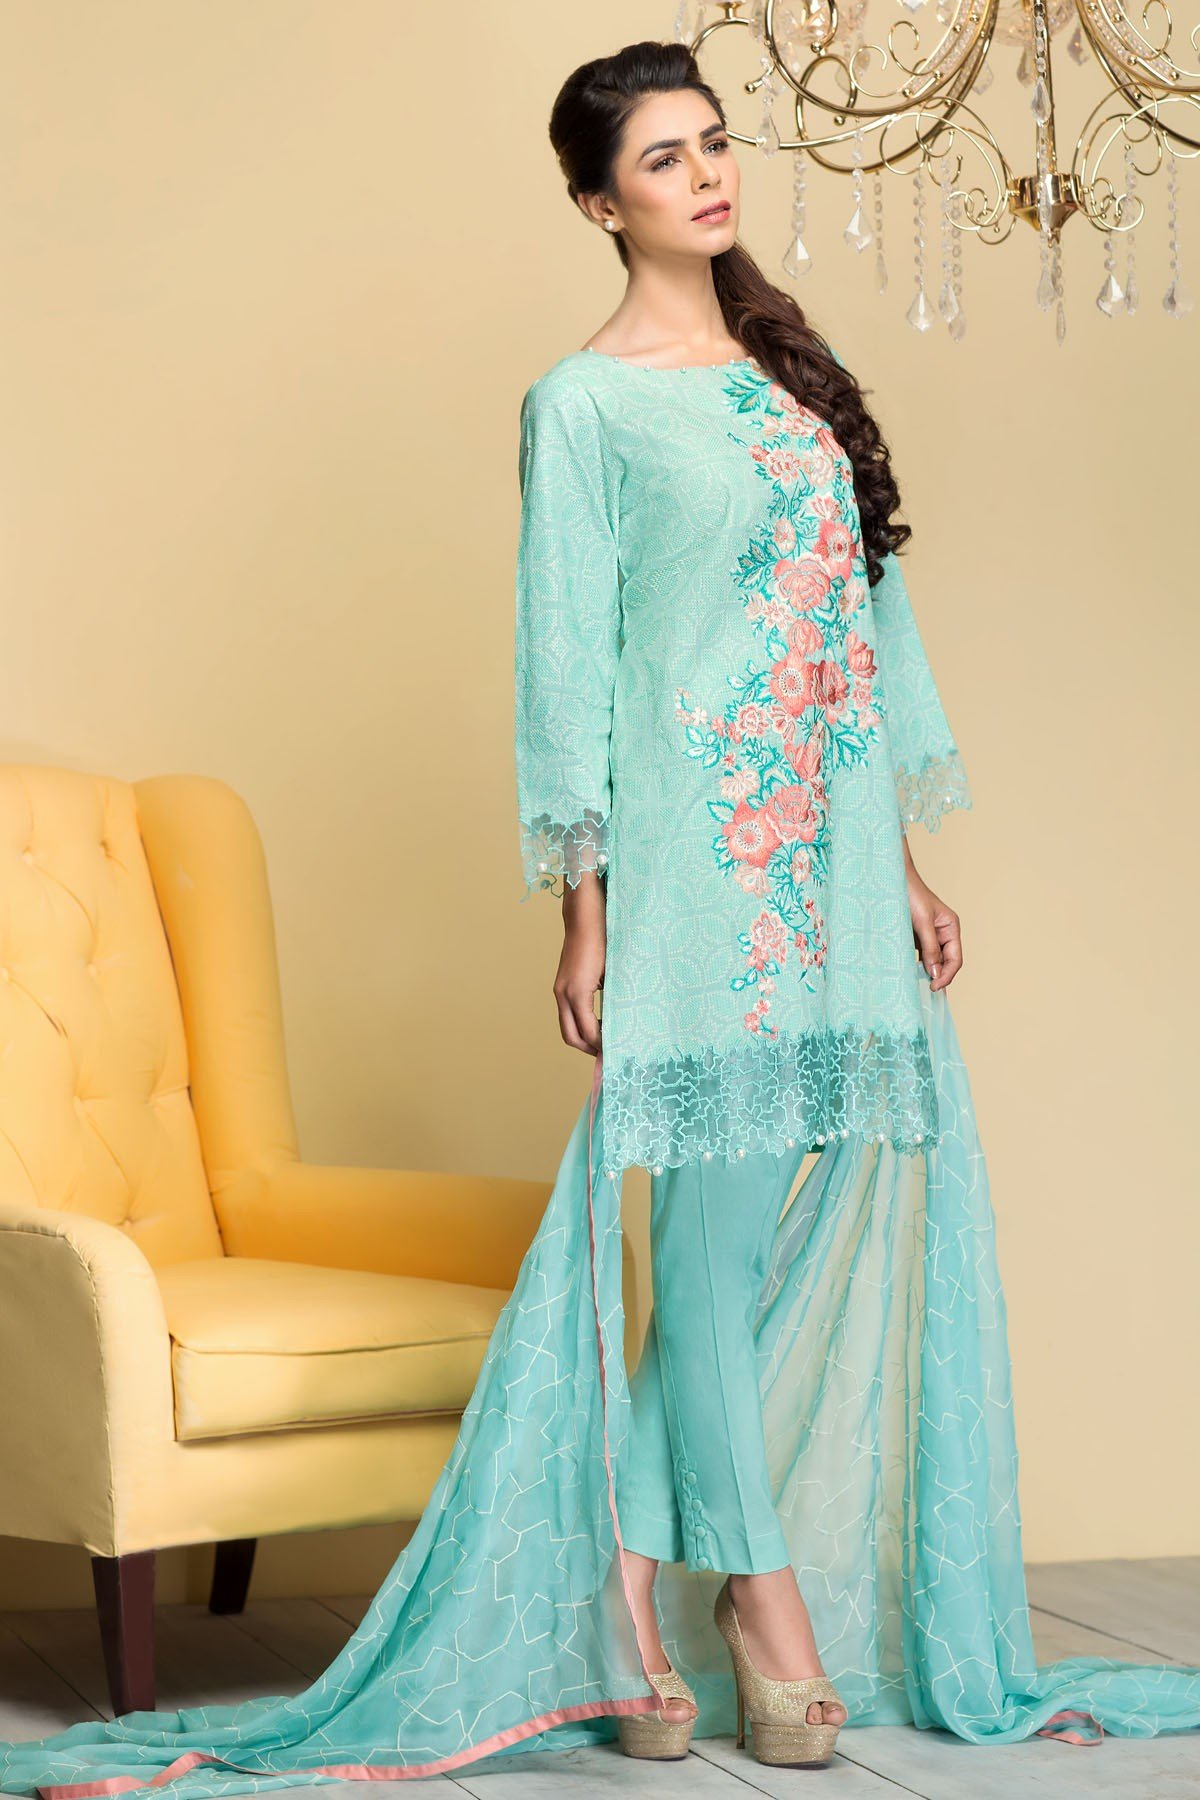 Mausummery Best Lawn Dresses Spring Summer 2016-2017 Collection (4)